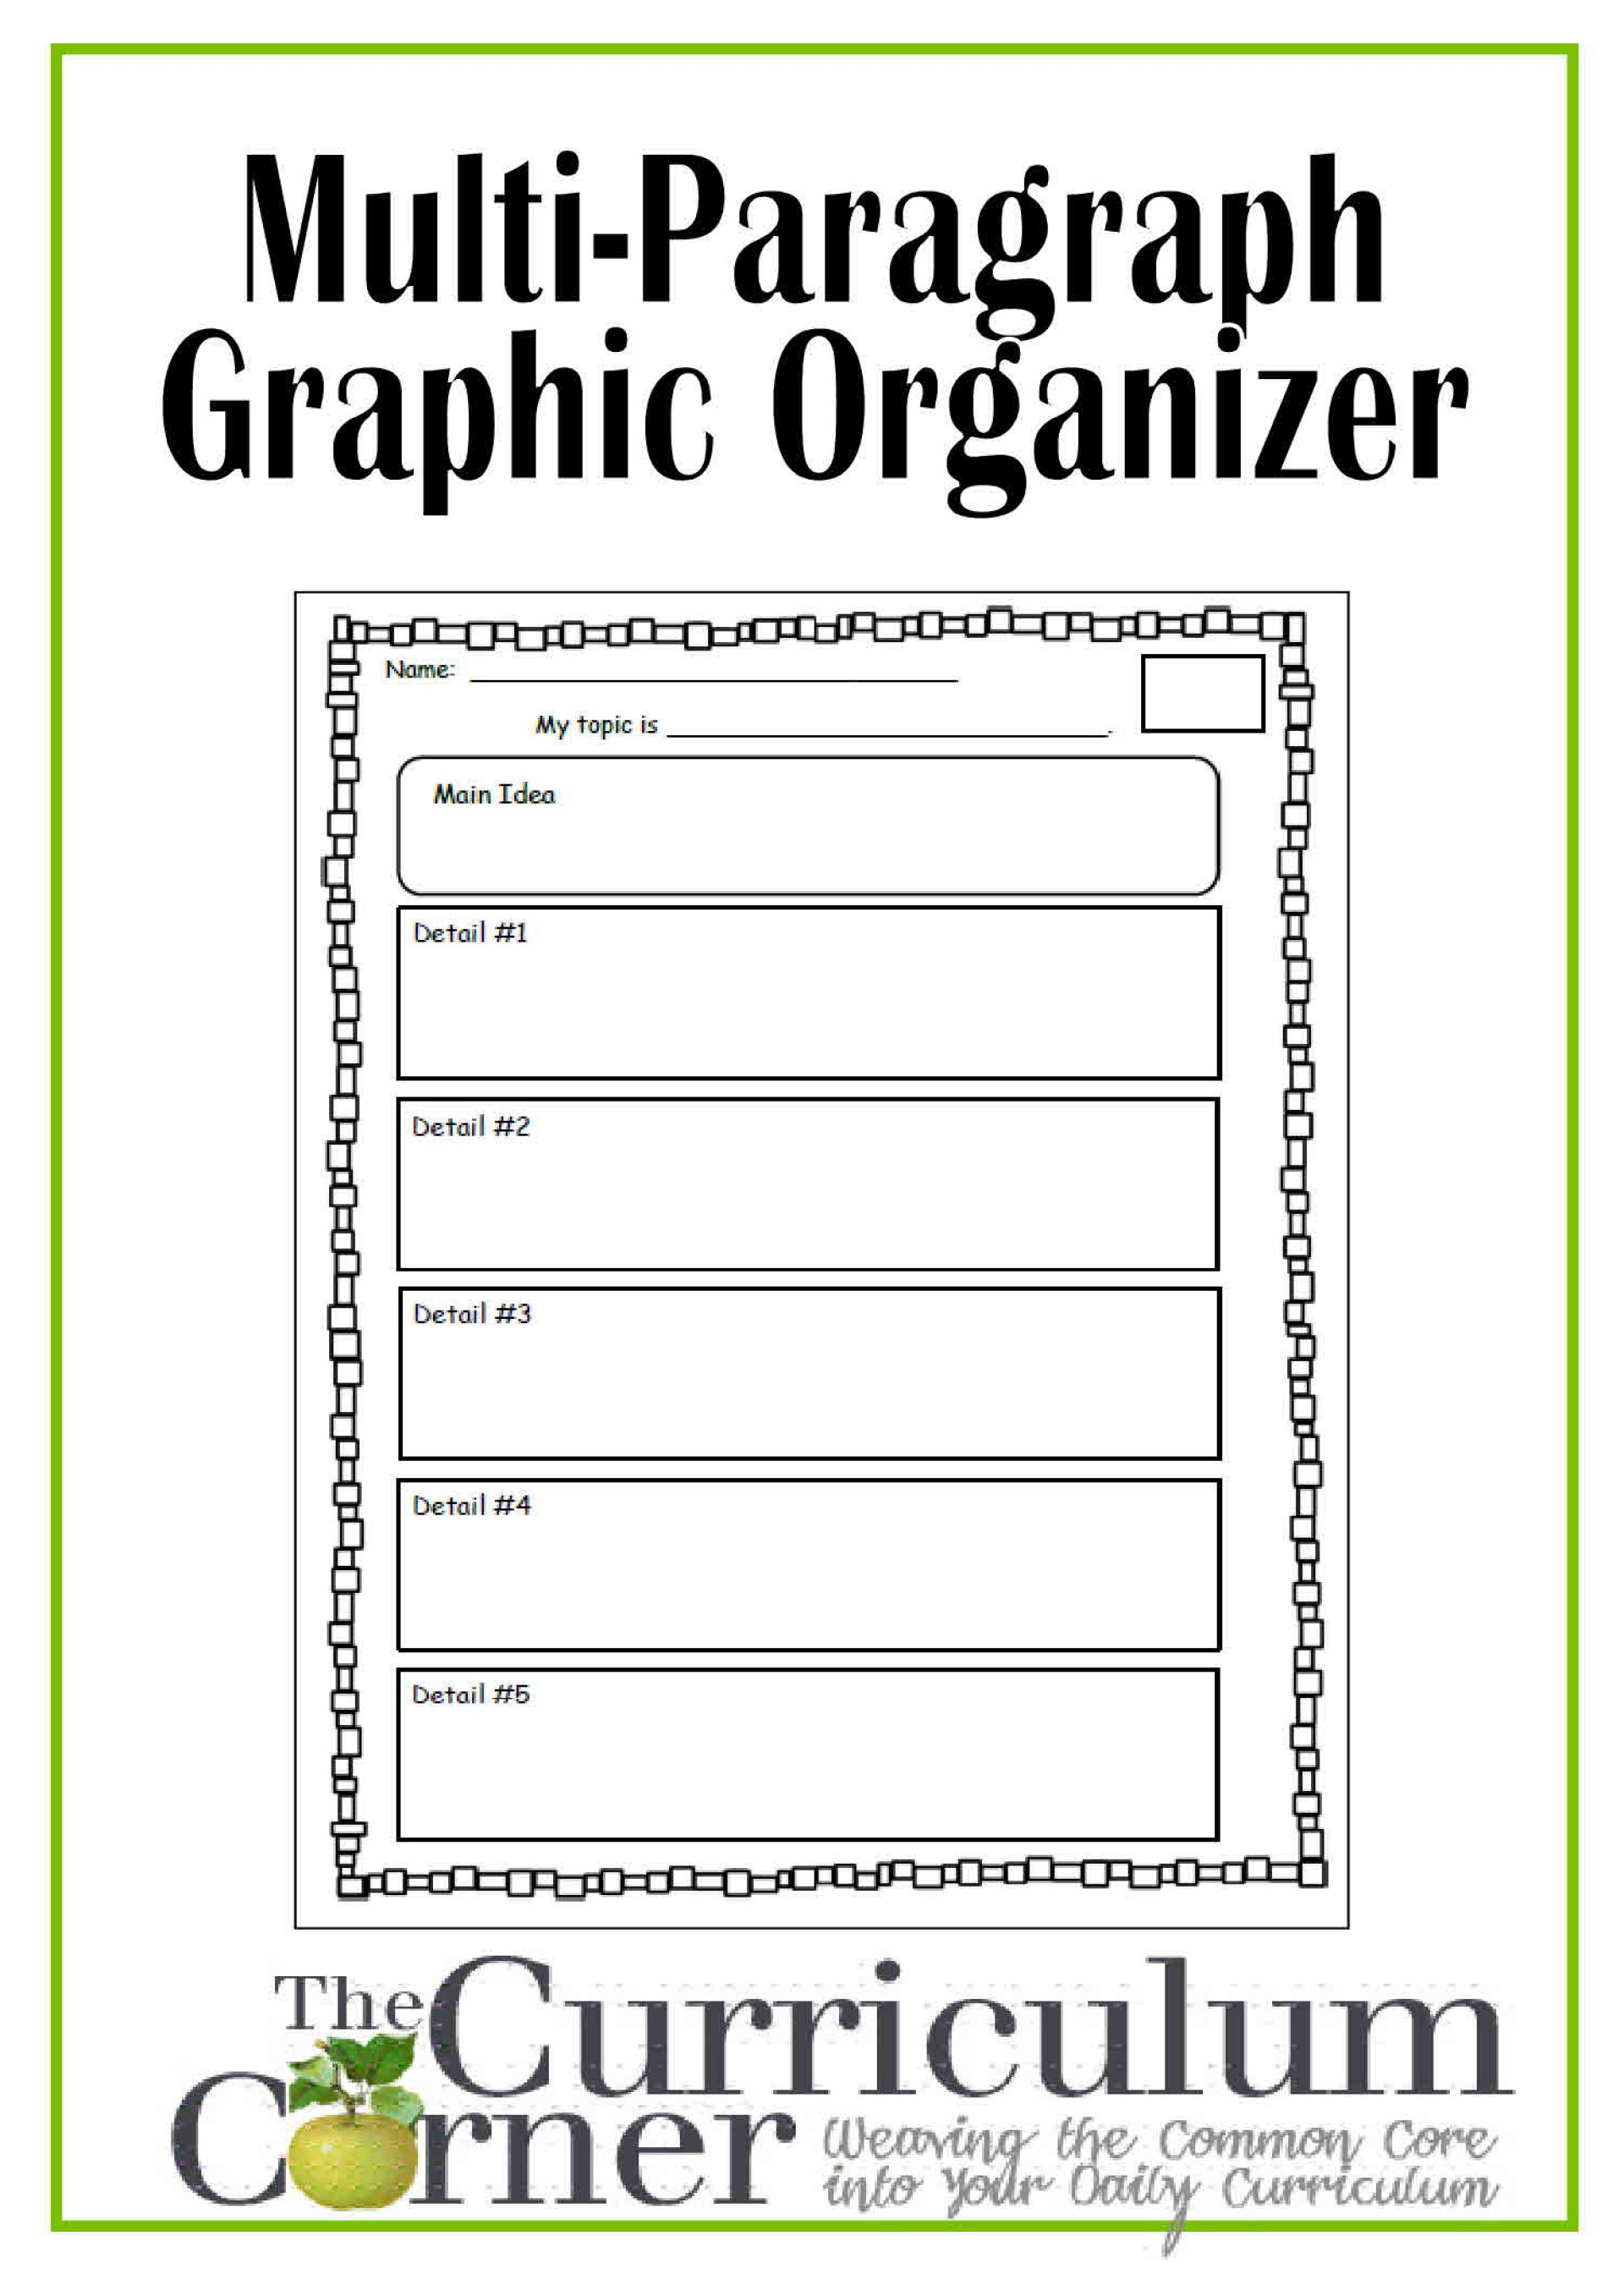 001 Research Paper Graphic Organizer Marvelous Middle School Pdf 6th Grade 3rd 1920